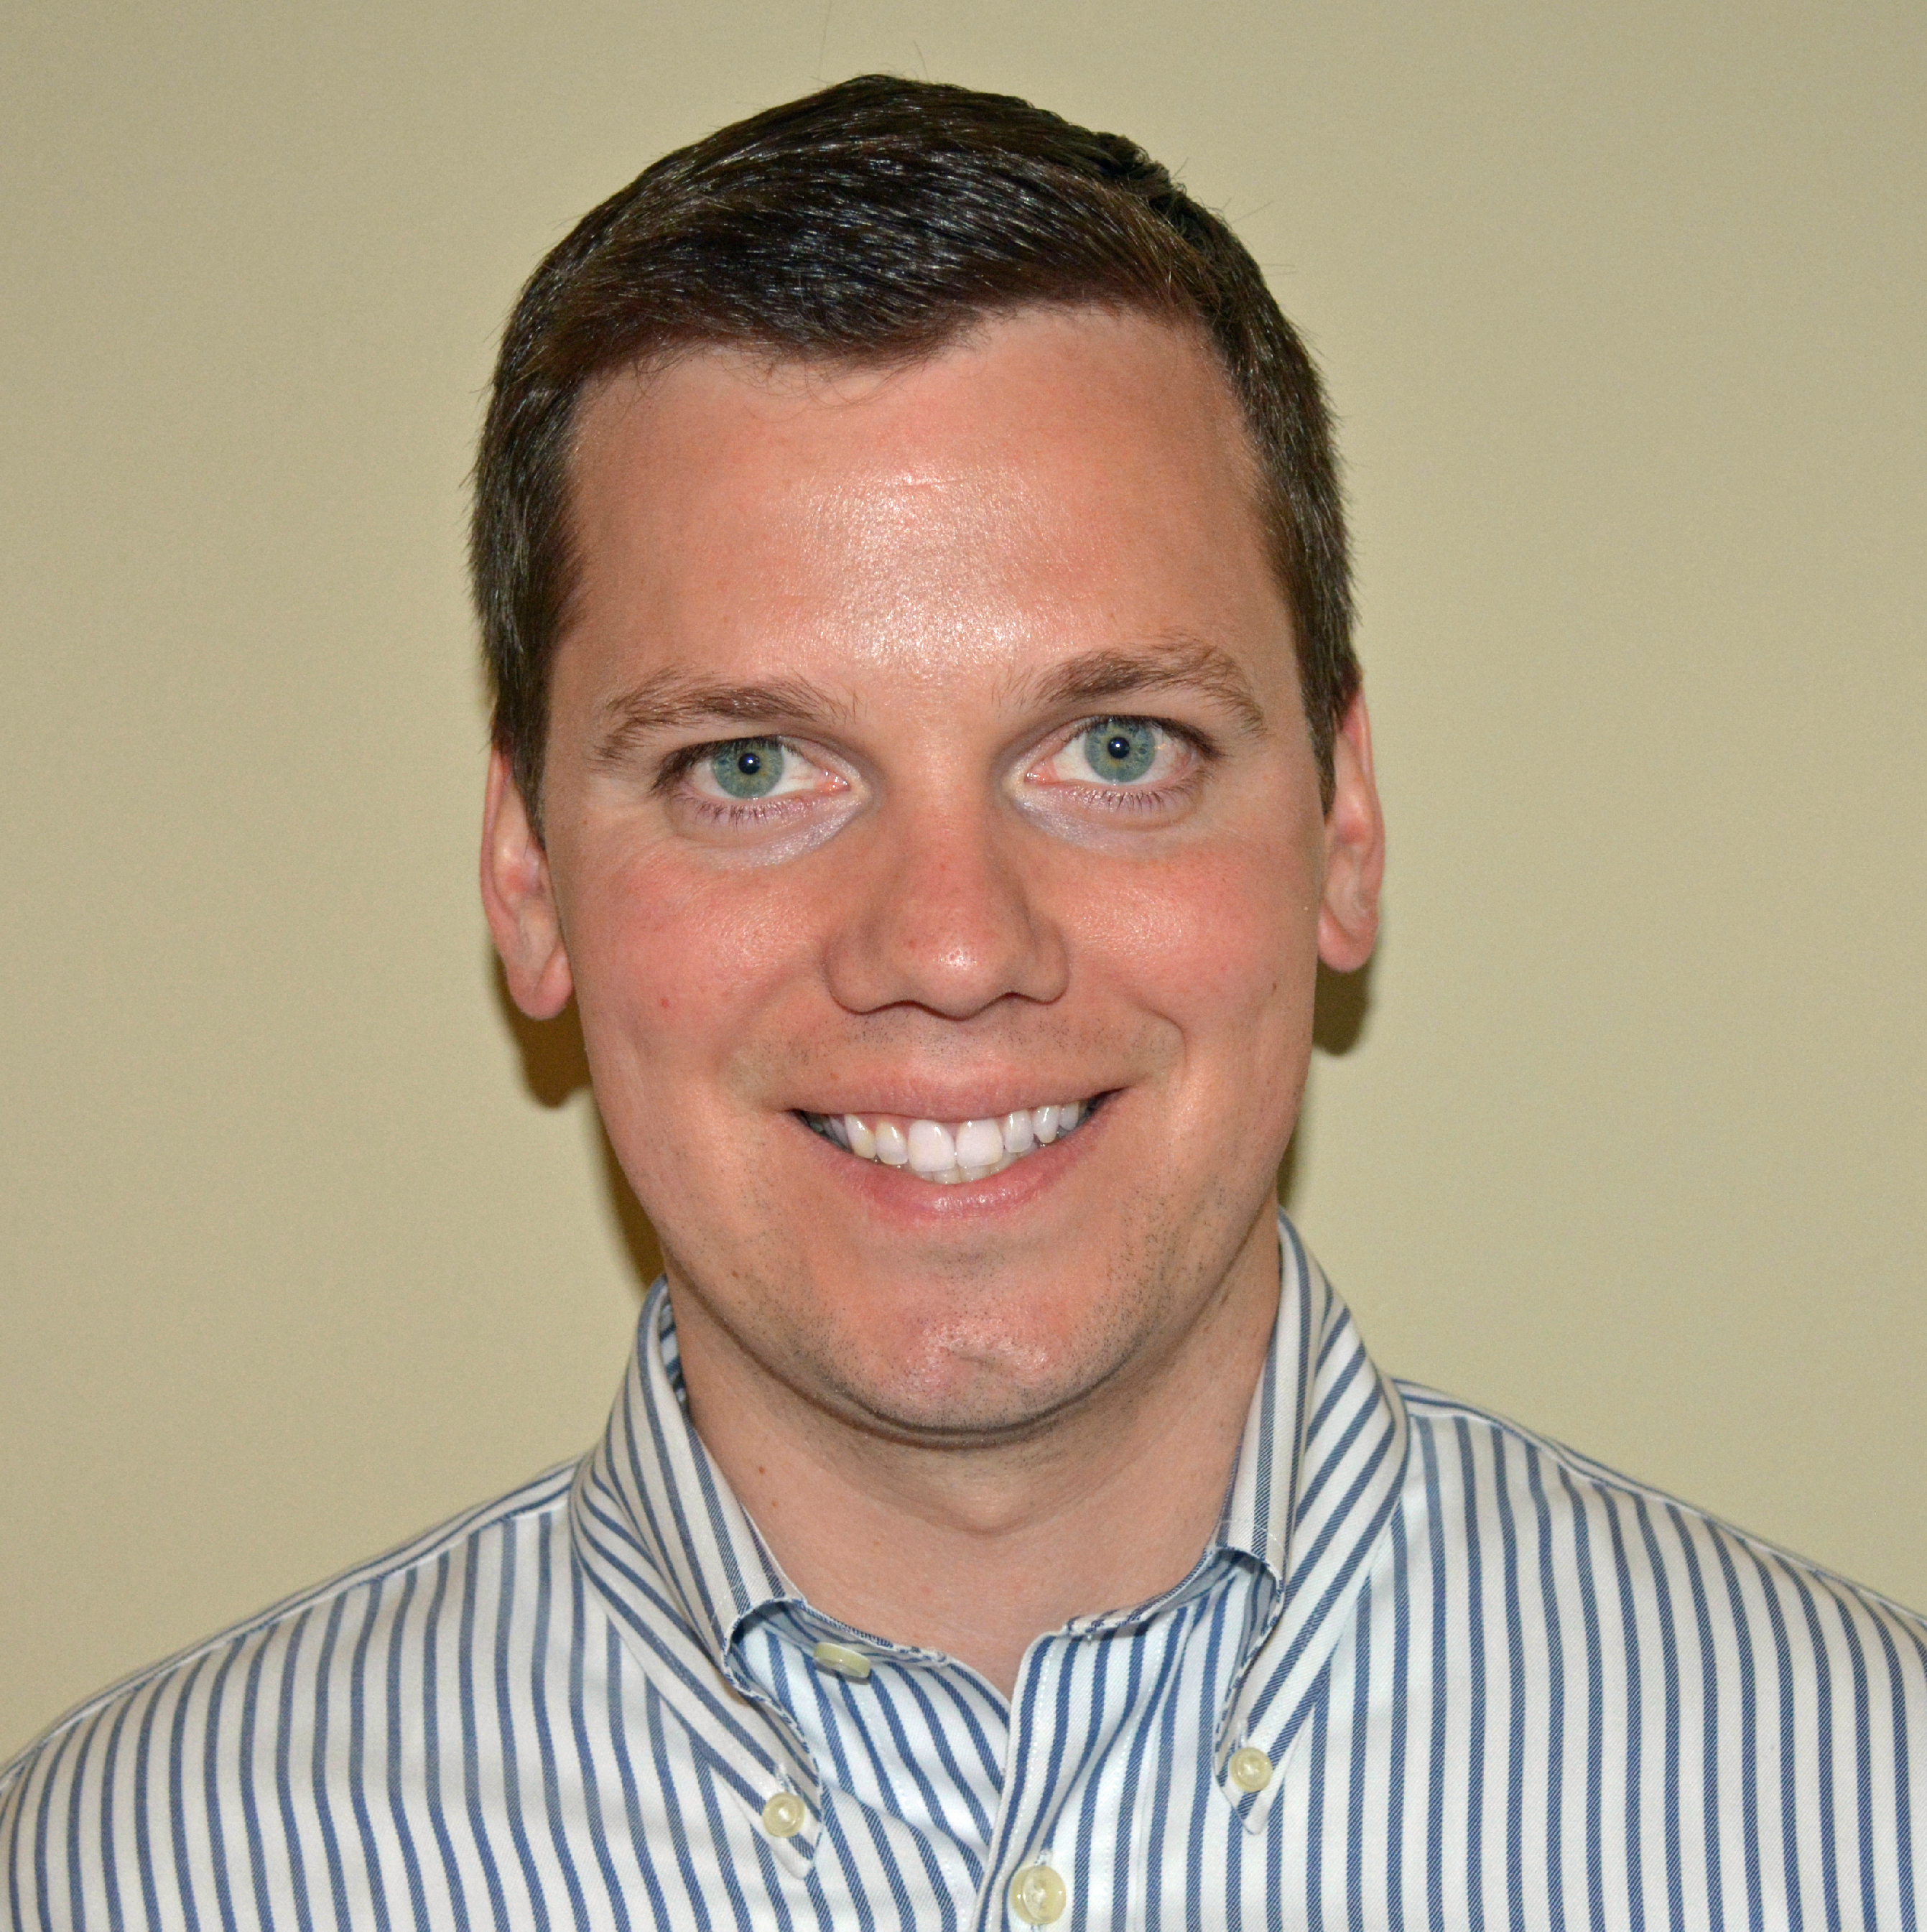 Heather West Pr Client News Kolbe Highlights Both: Heather West Public Relations :: Wausau Adds Two Sales Reps